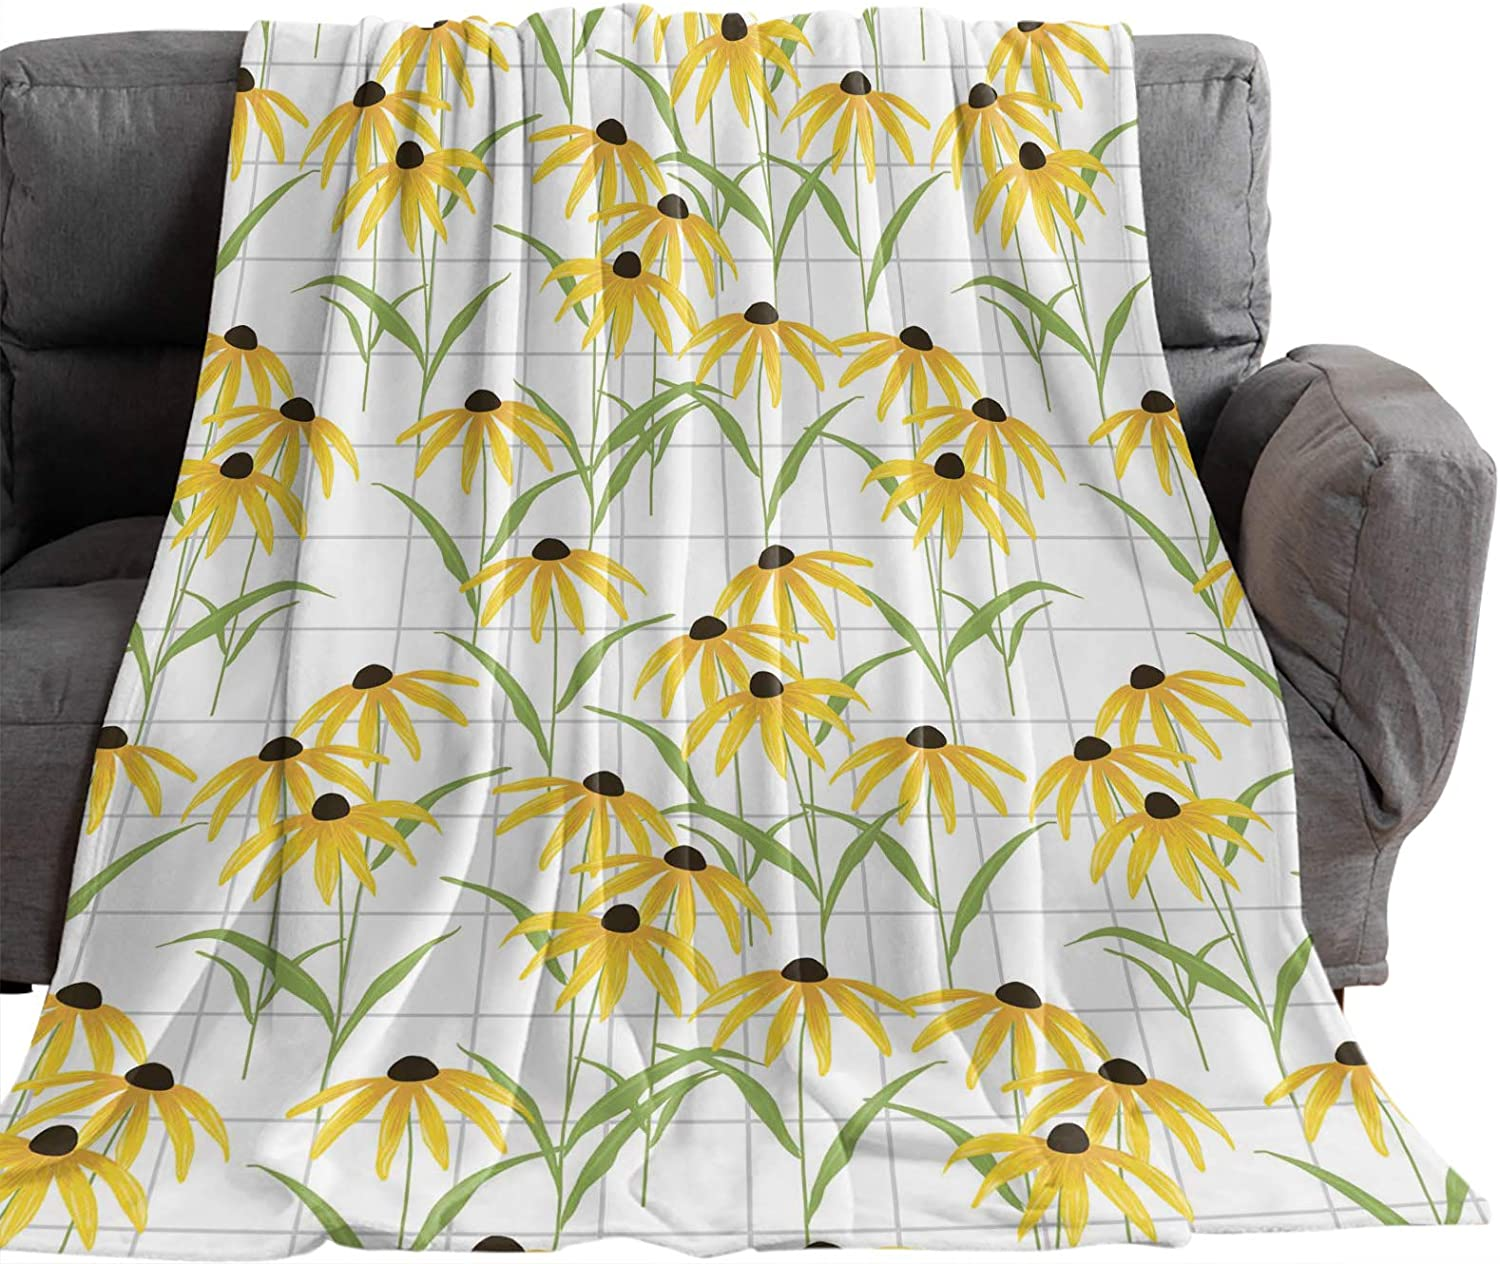 Flannel Fleece Throw Be super welcome Blanket for Daisy L Couch Watercolor OFFer Yellow